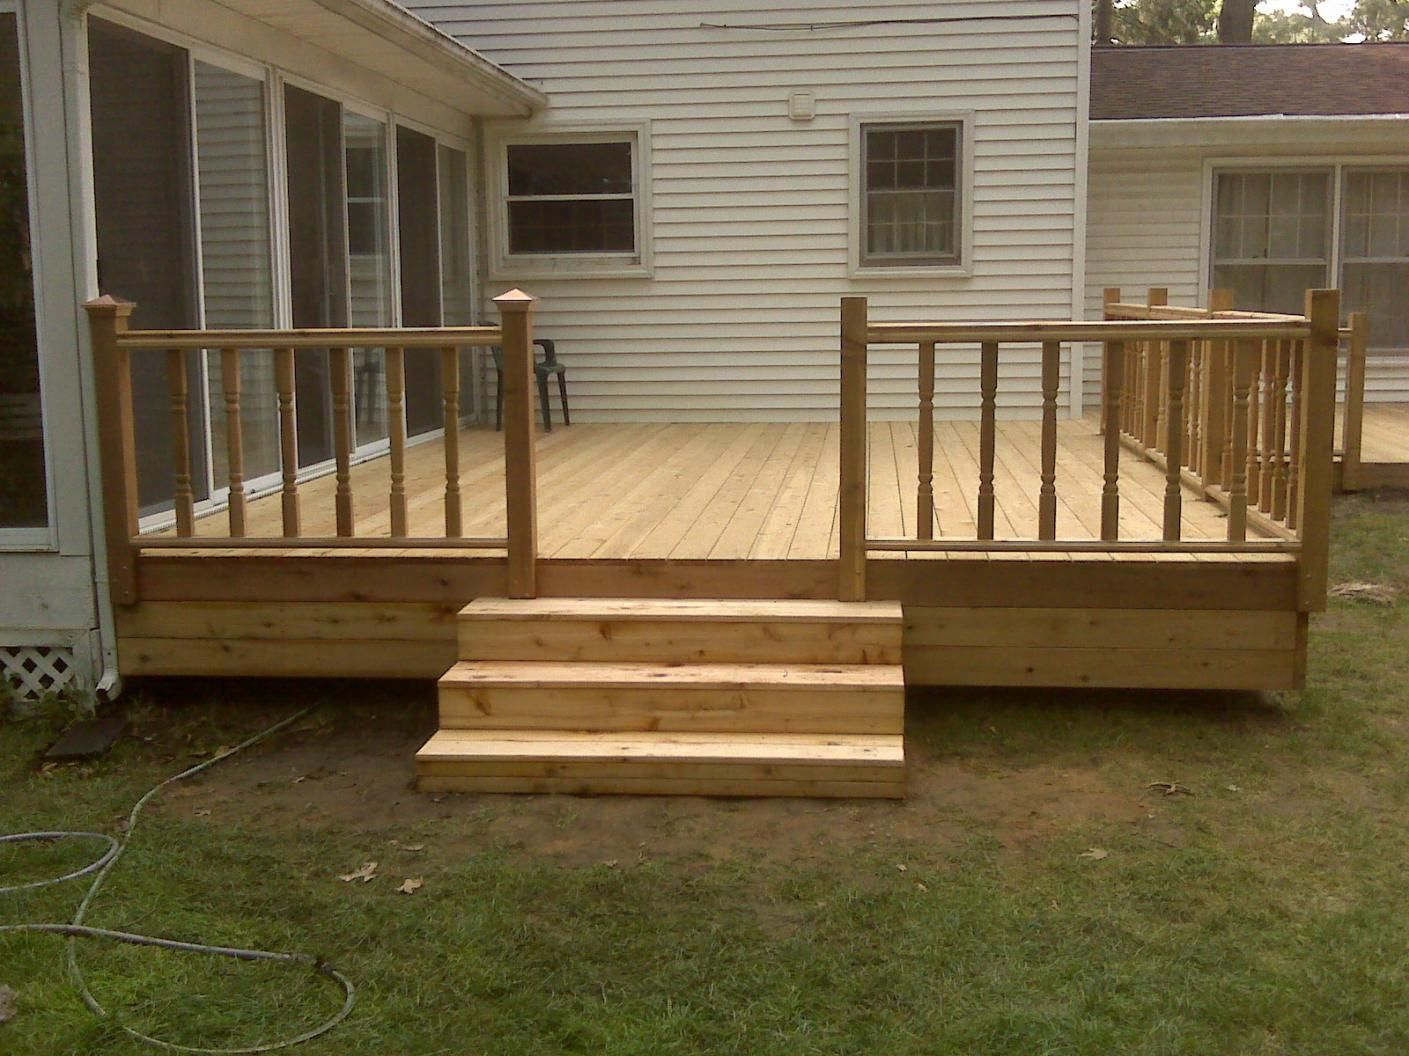 Simple deck ideas 1st cedar deck img00051 jpg